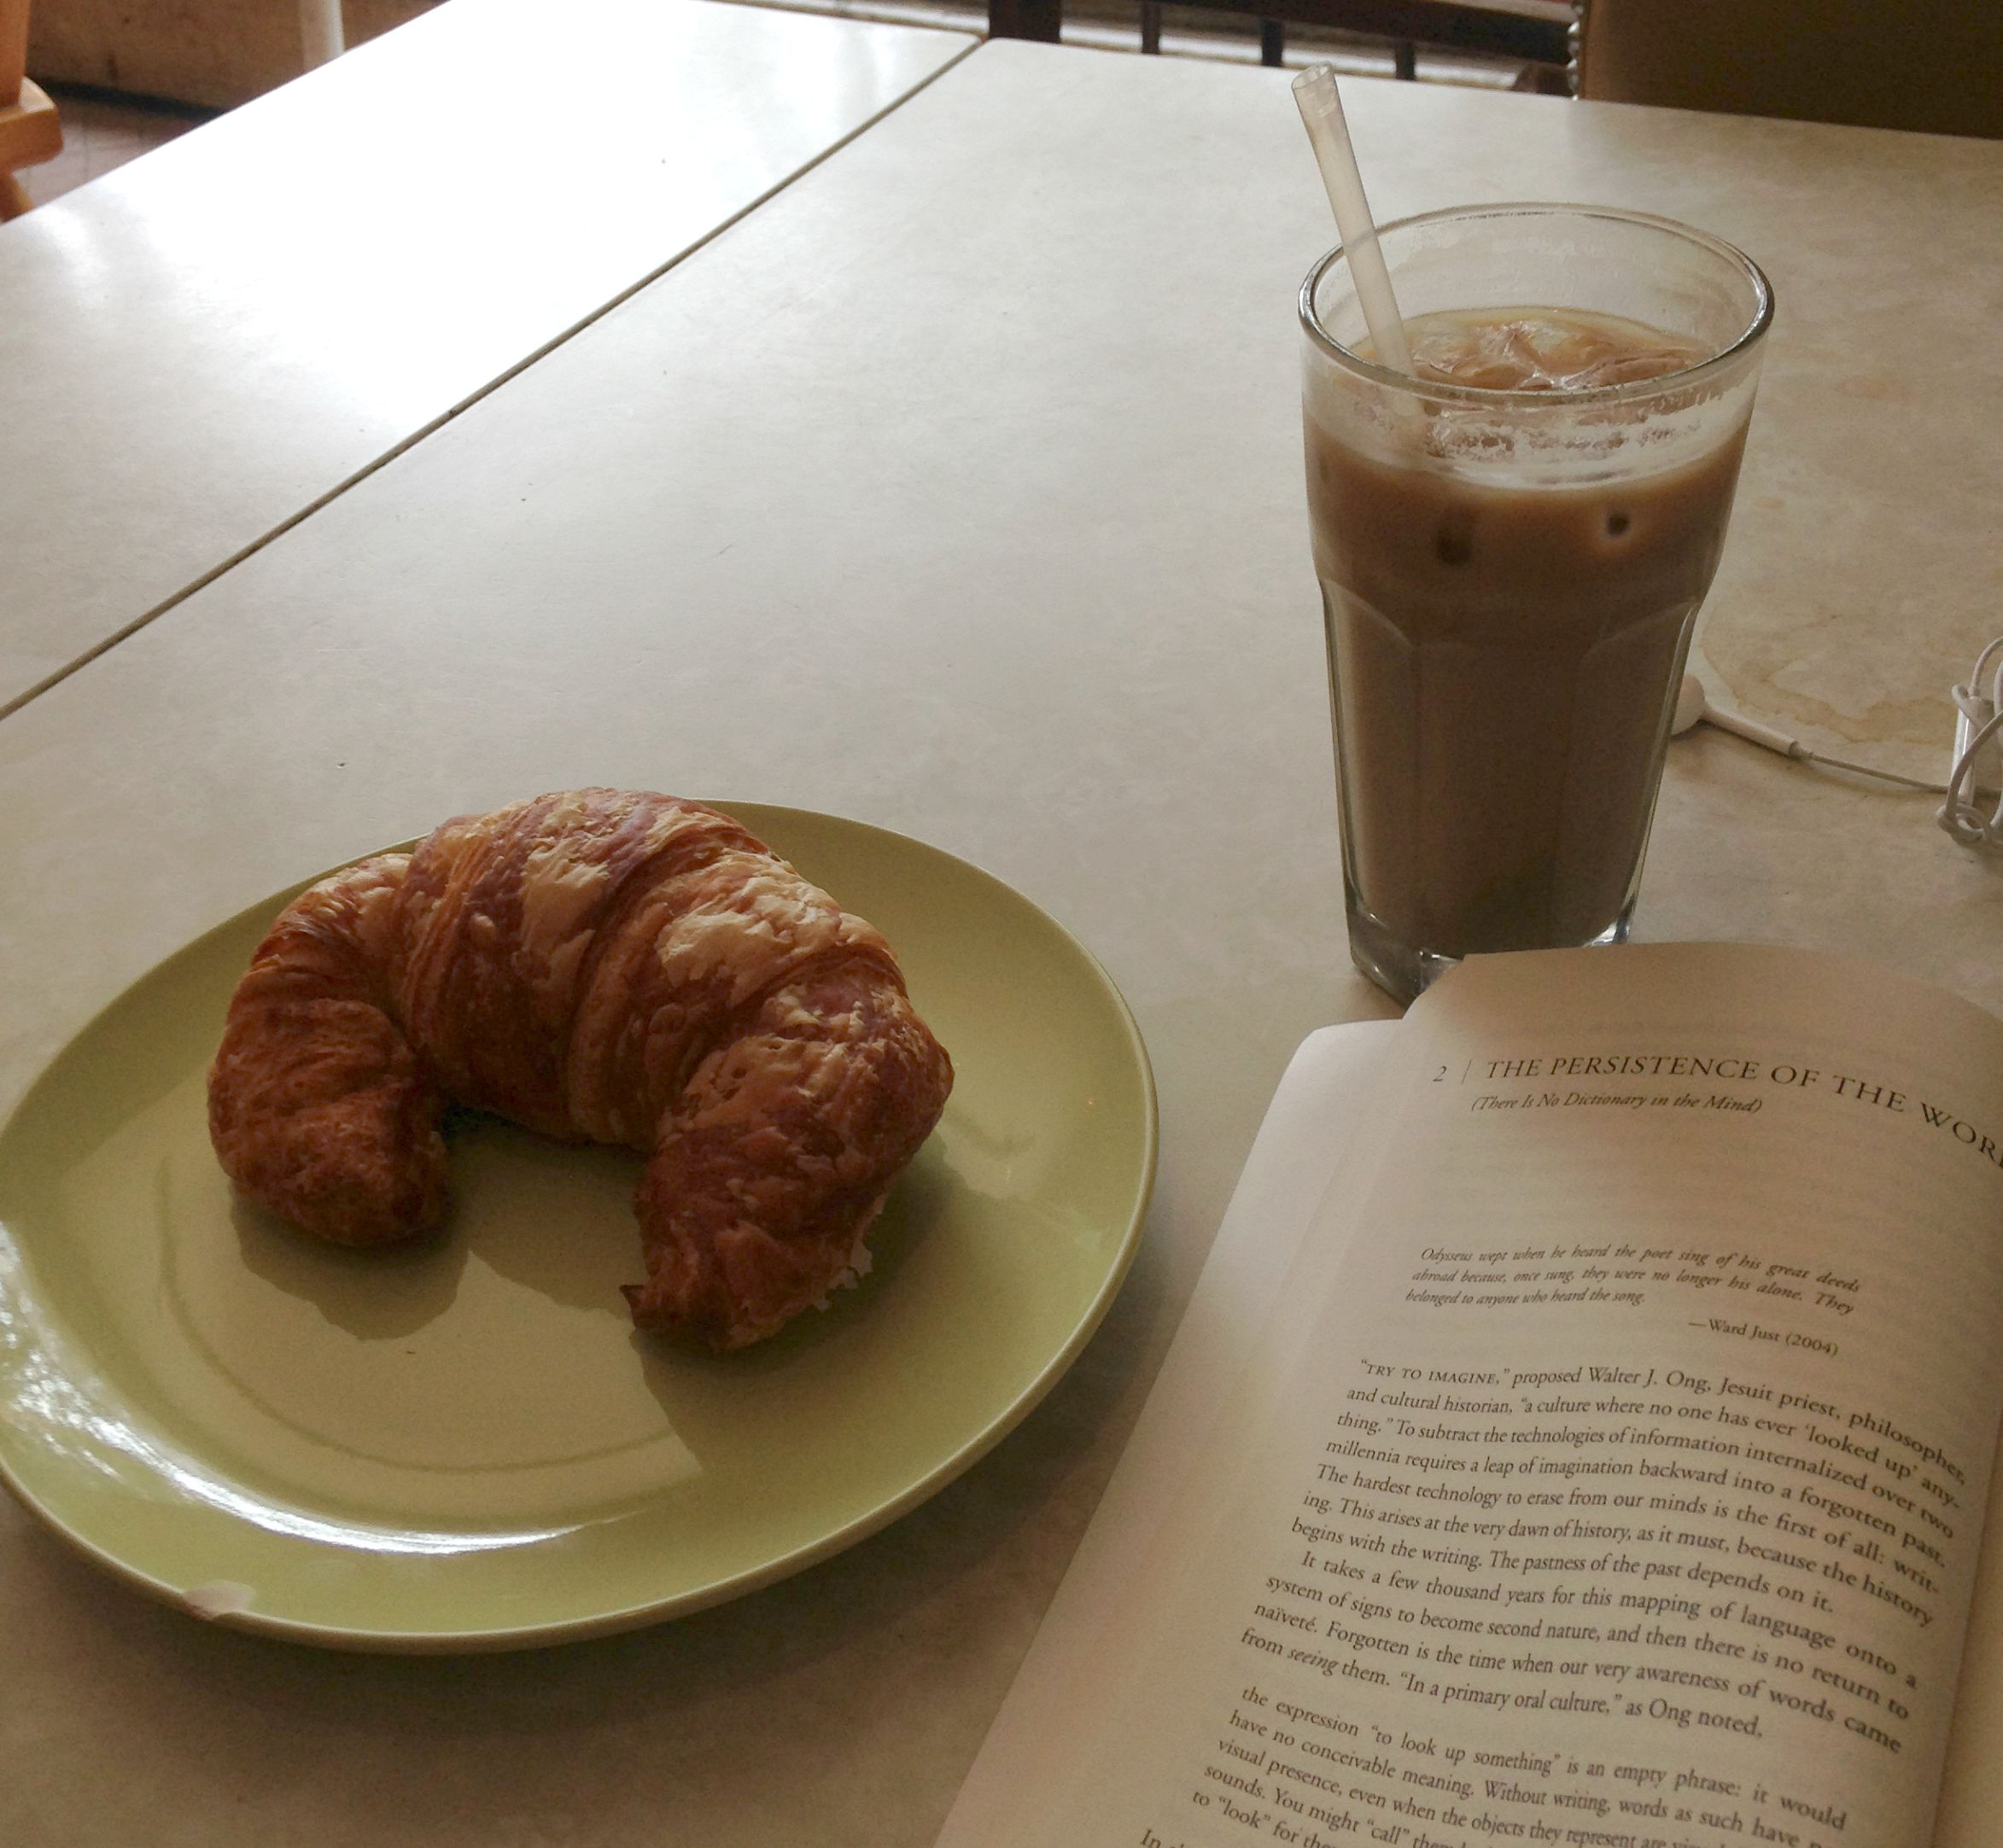 A croissant on a green plate with an iced coffee and an open book in a cafe.